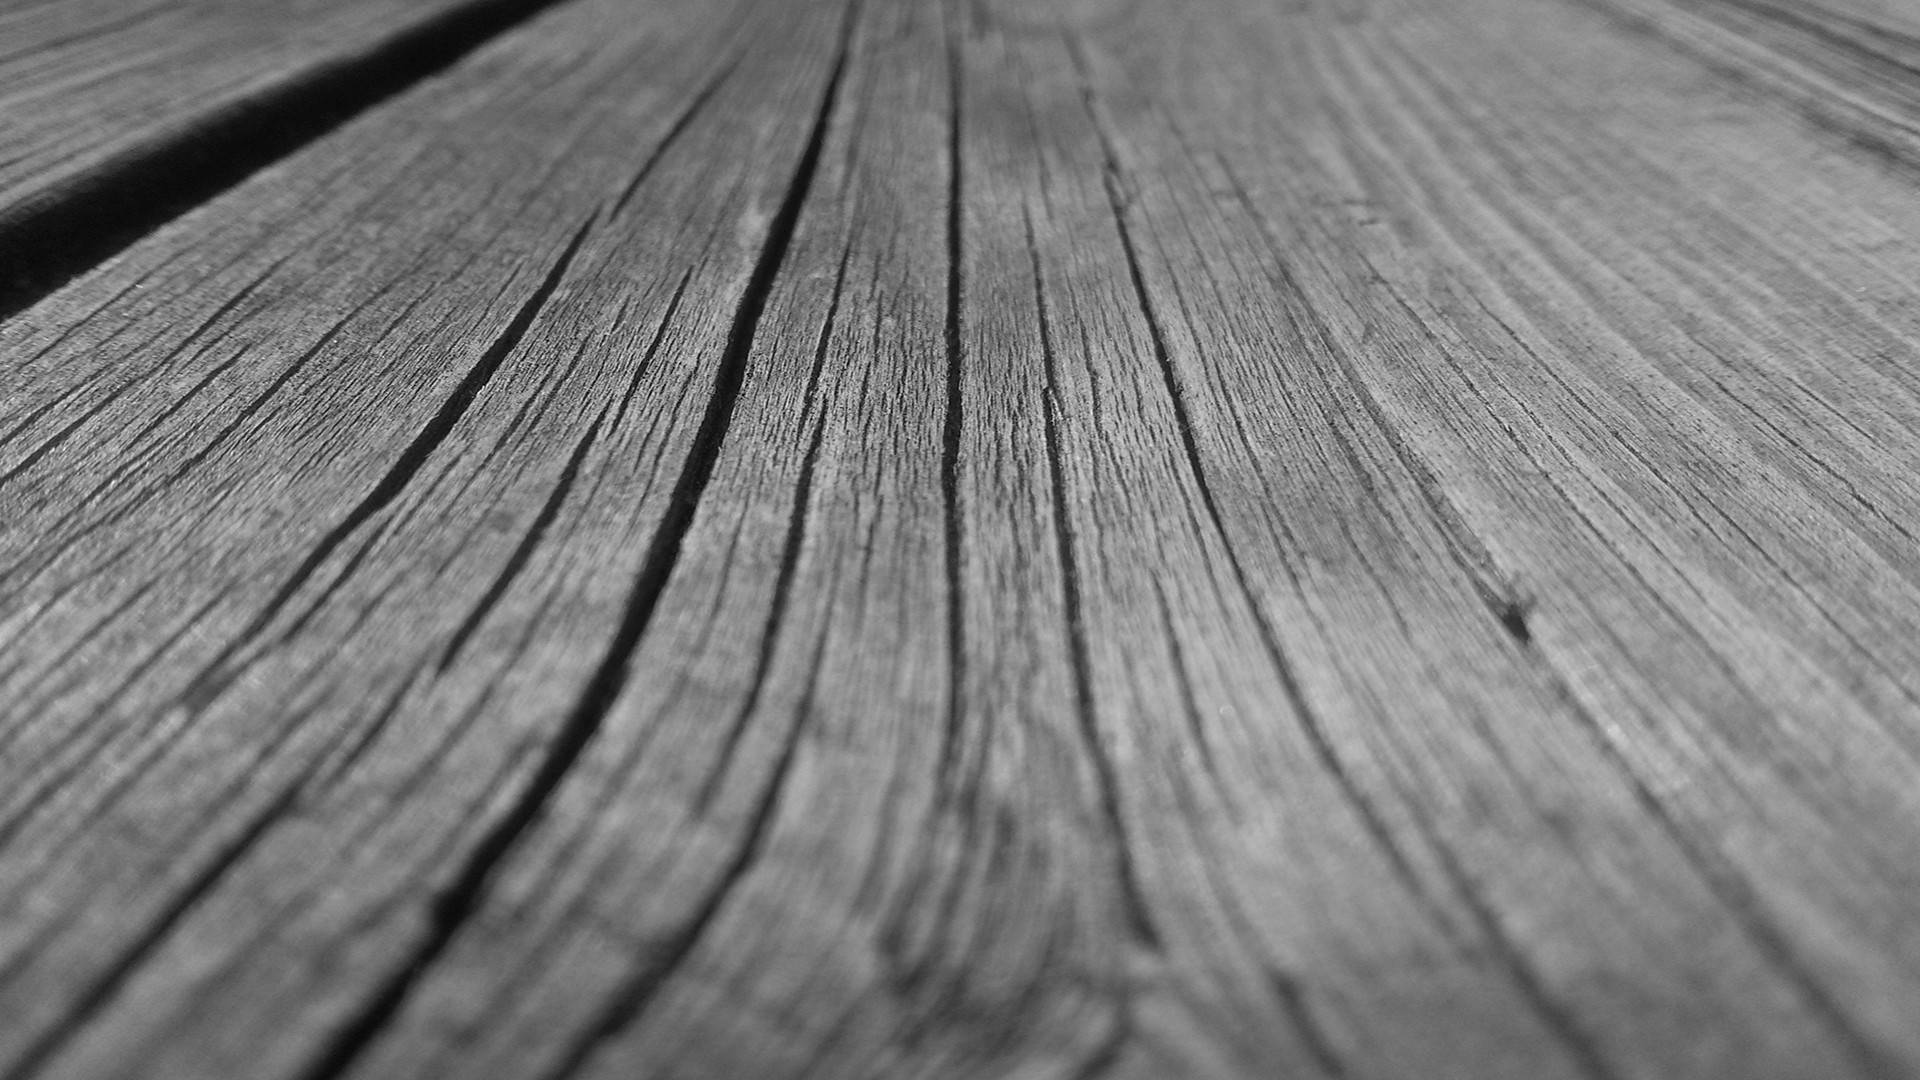 wood grain texture Wallpapers HD Resolution for Iphone, Computer